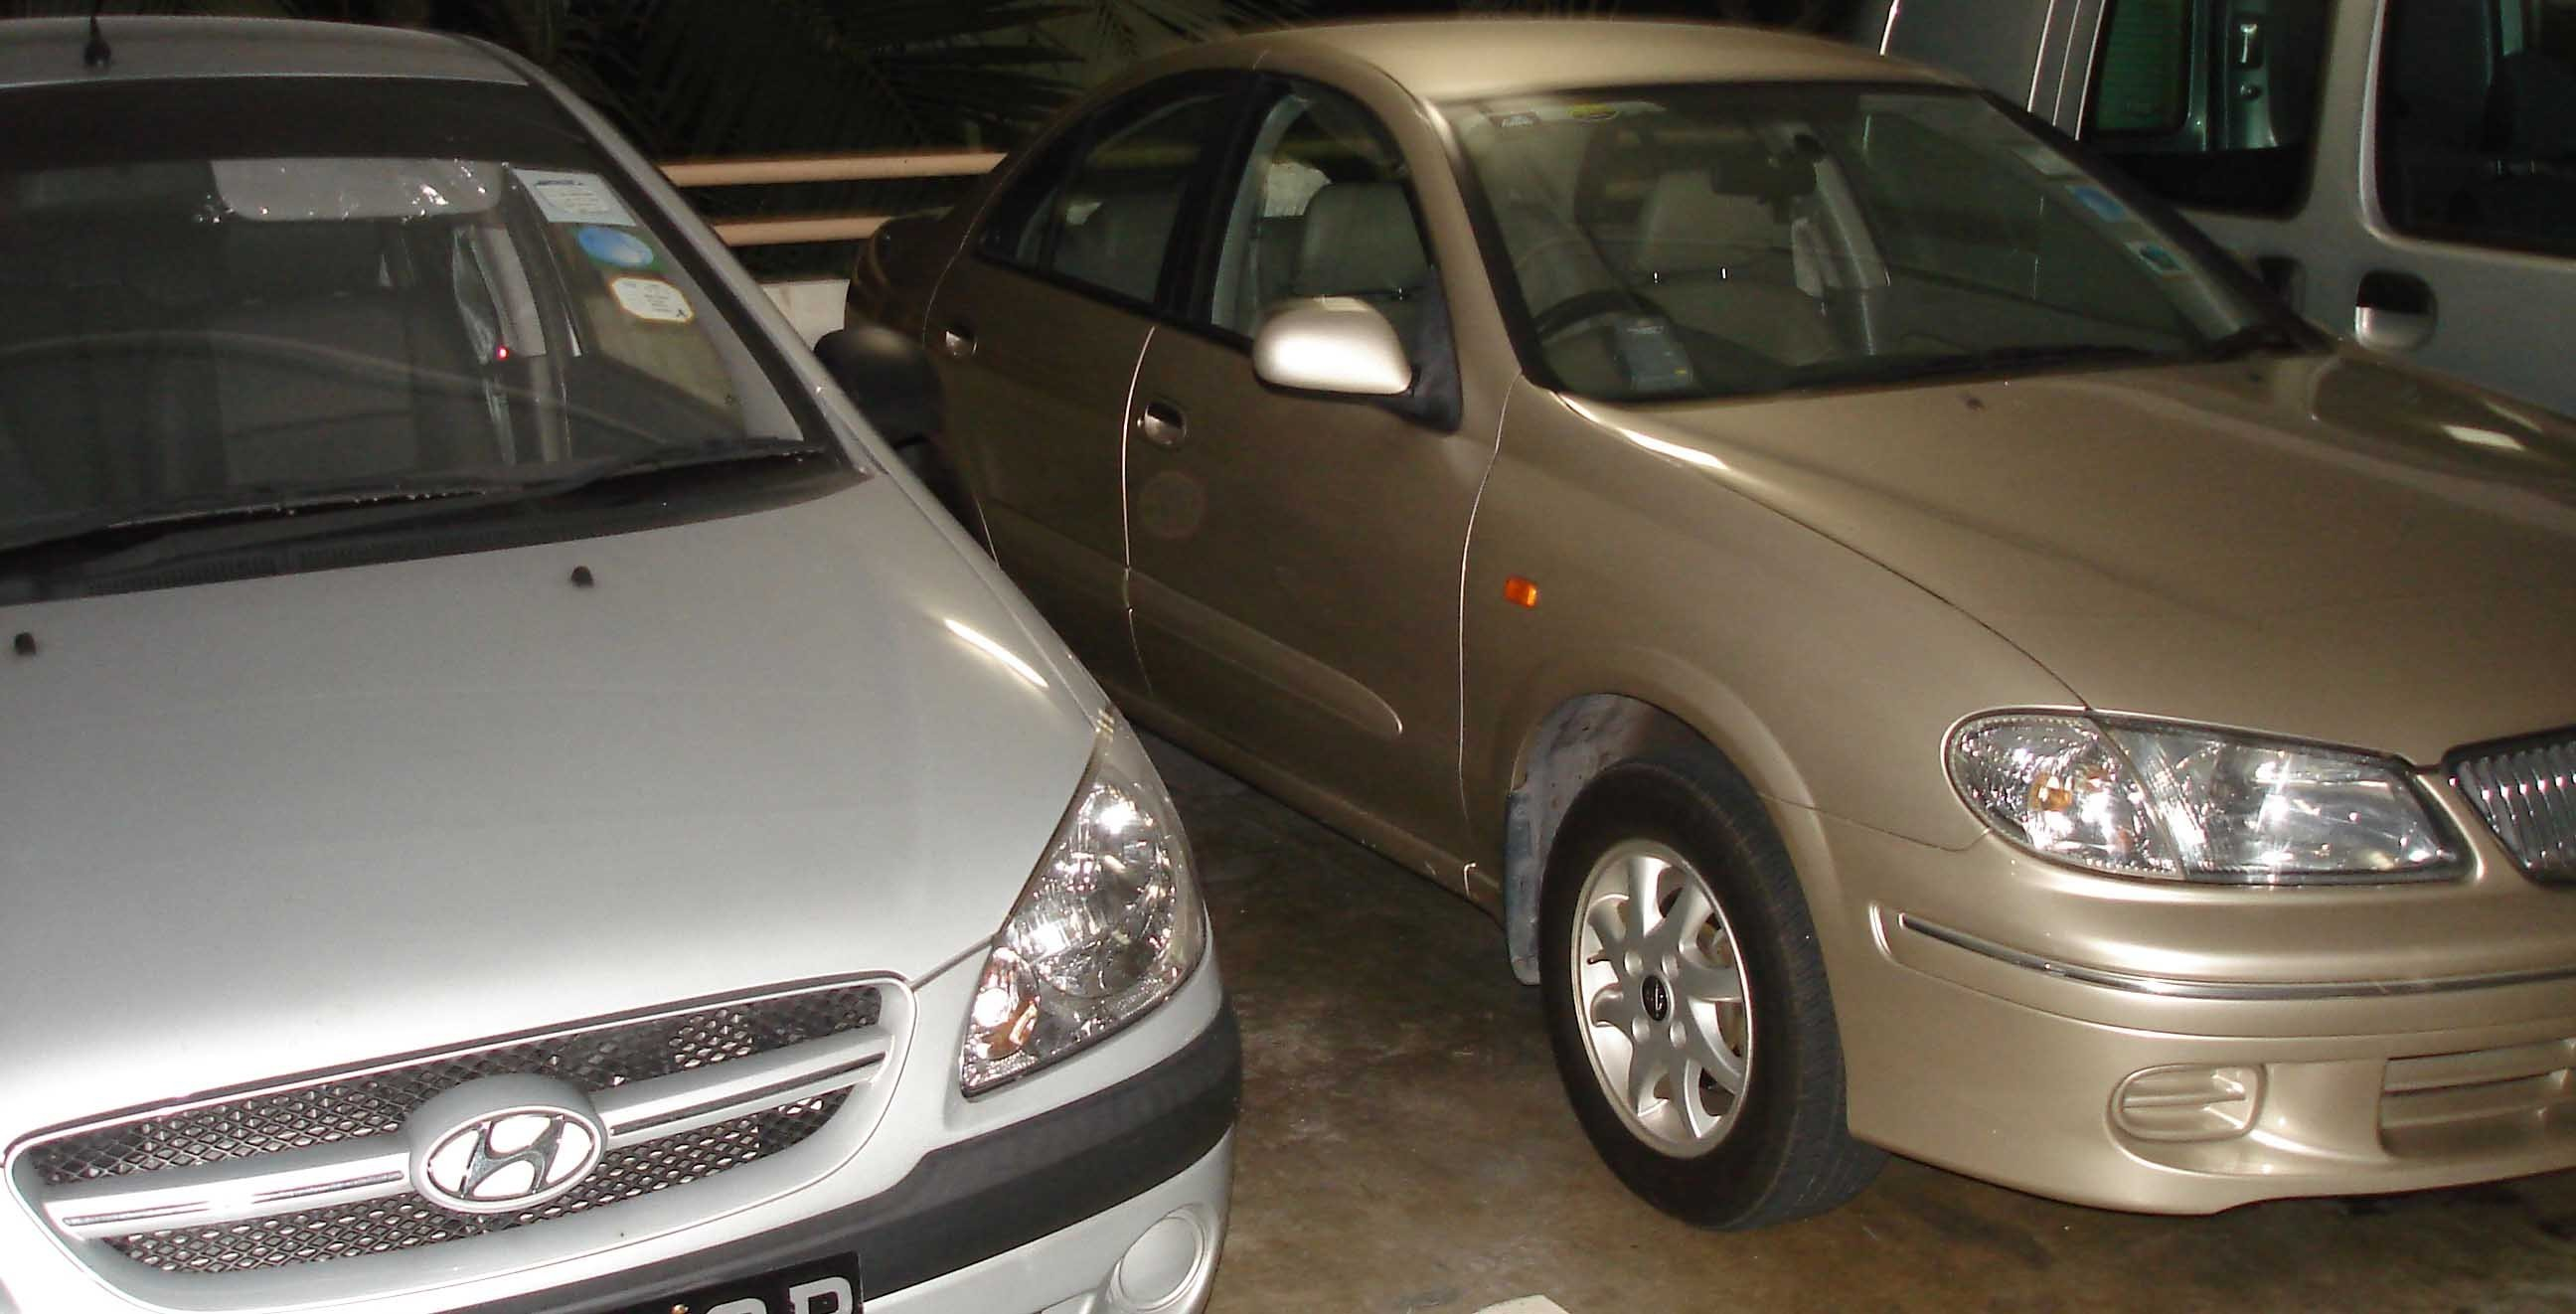 Used cars right hand drive used cars right hand drive suppliers and manufacturers at alibaba com